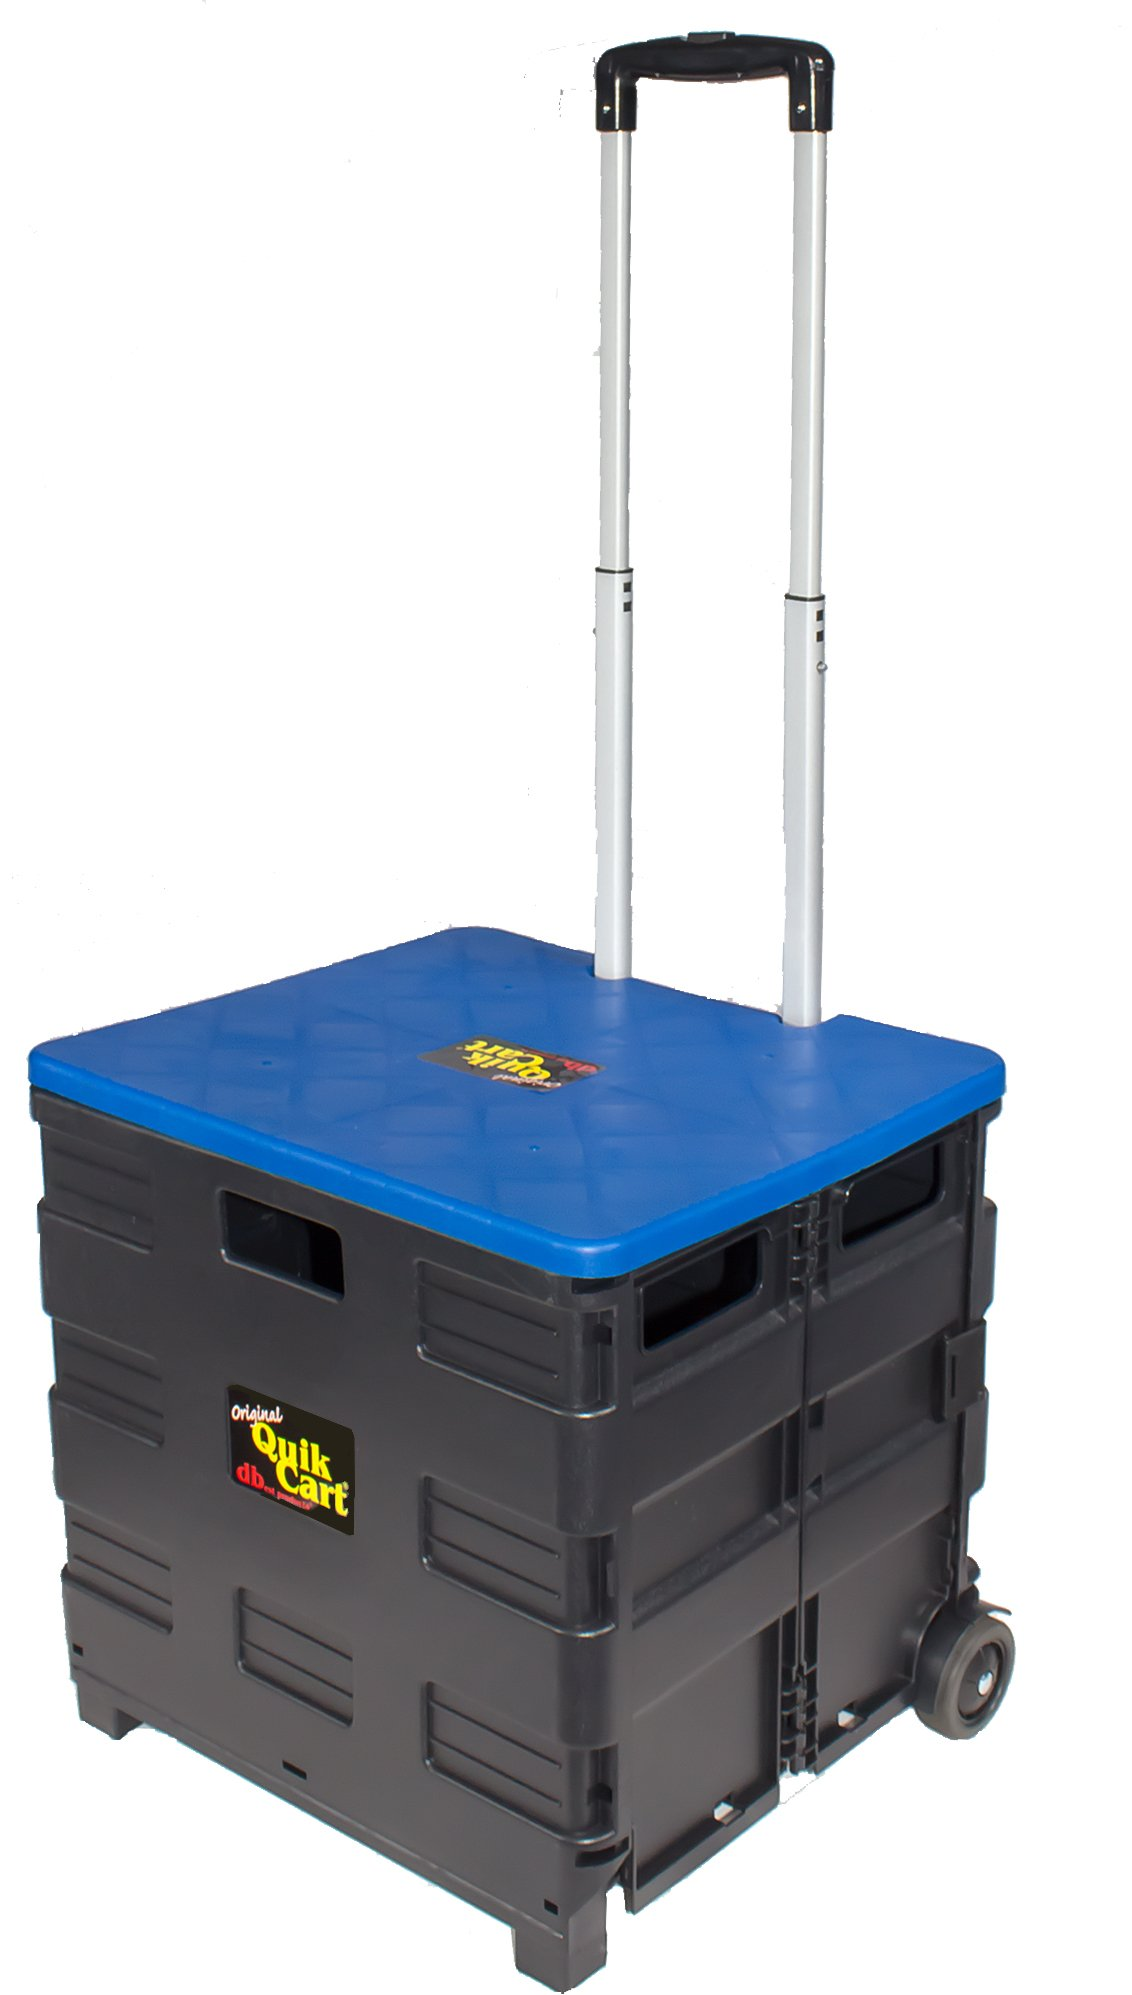 dbest products Quik Cart Two-Wheeled Collapsible Handcart Blue Lid Rolling Utility Cart seat Heavy Duty Lightweight